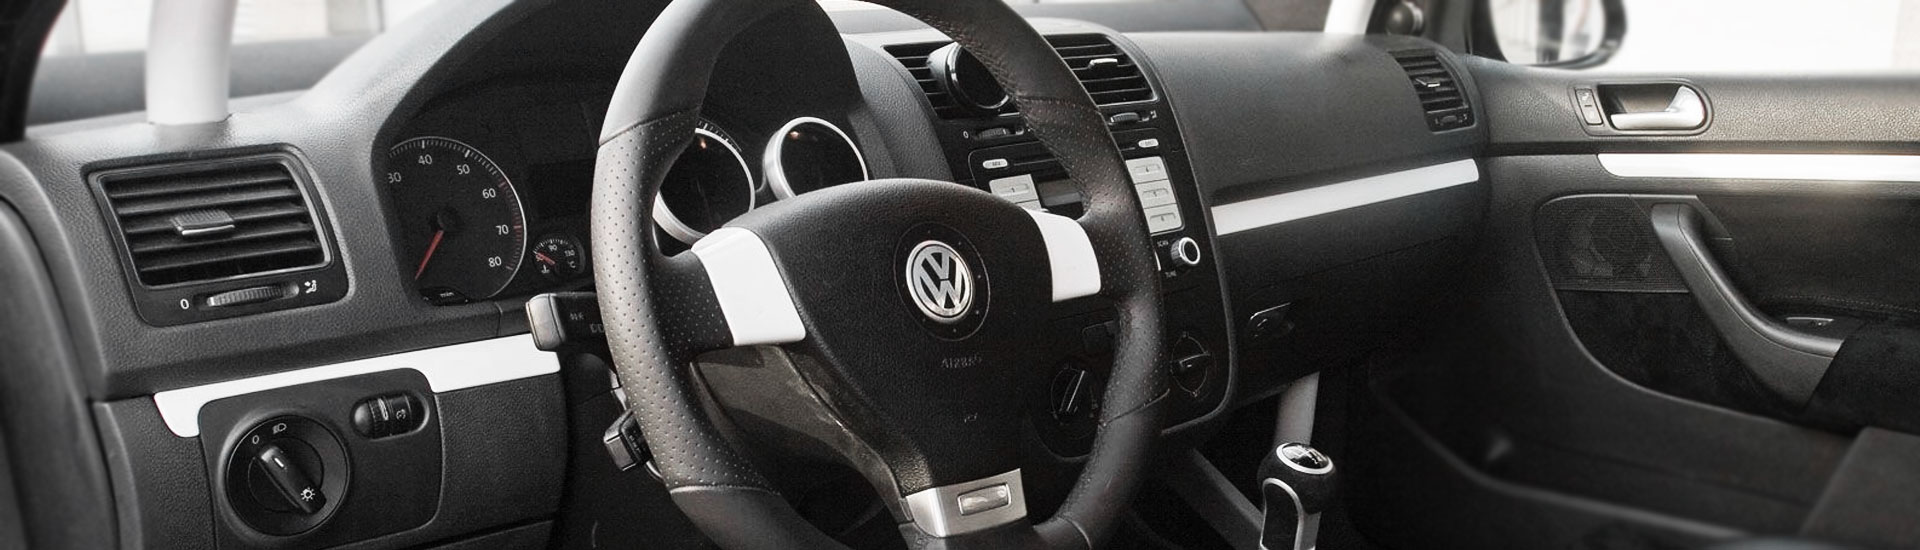 Volkswagen Rabbit Custom Dash Kits